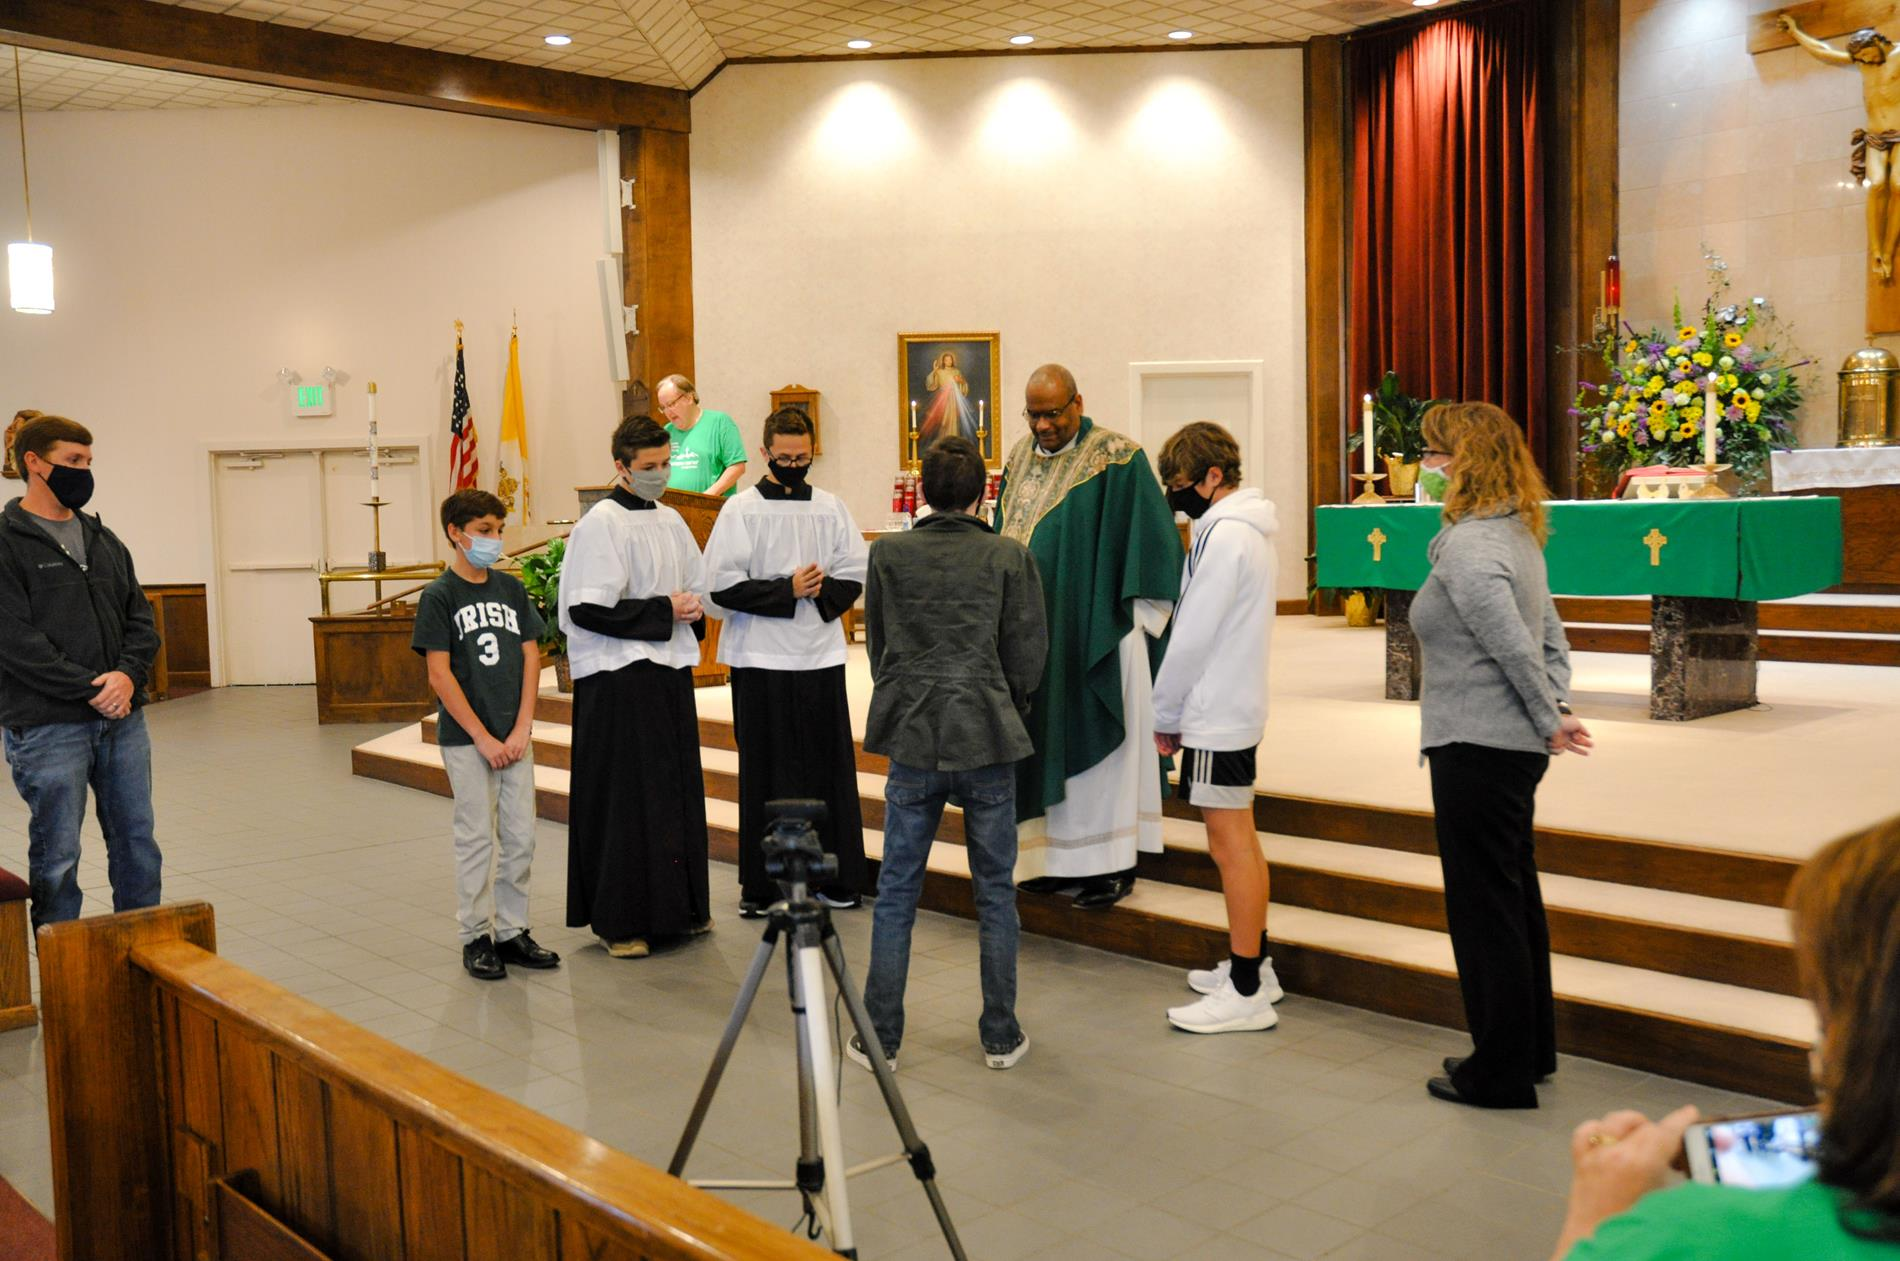 Mason presents plaque in gratitude to Fr. Vernon for his support